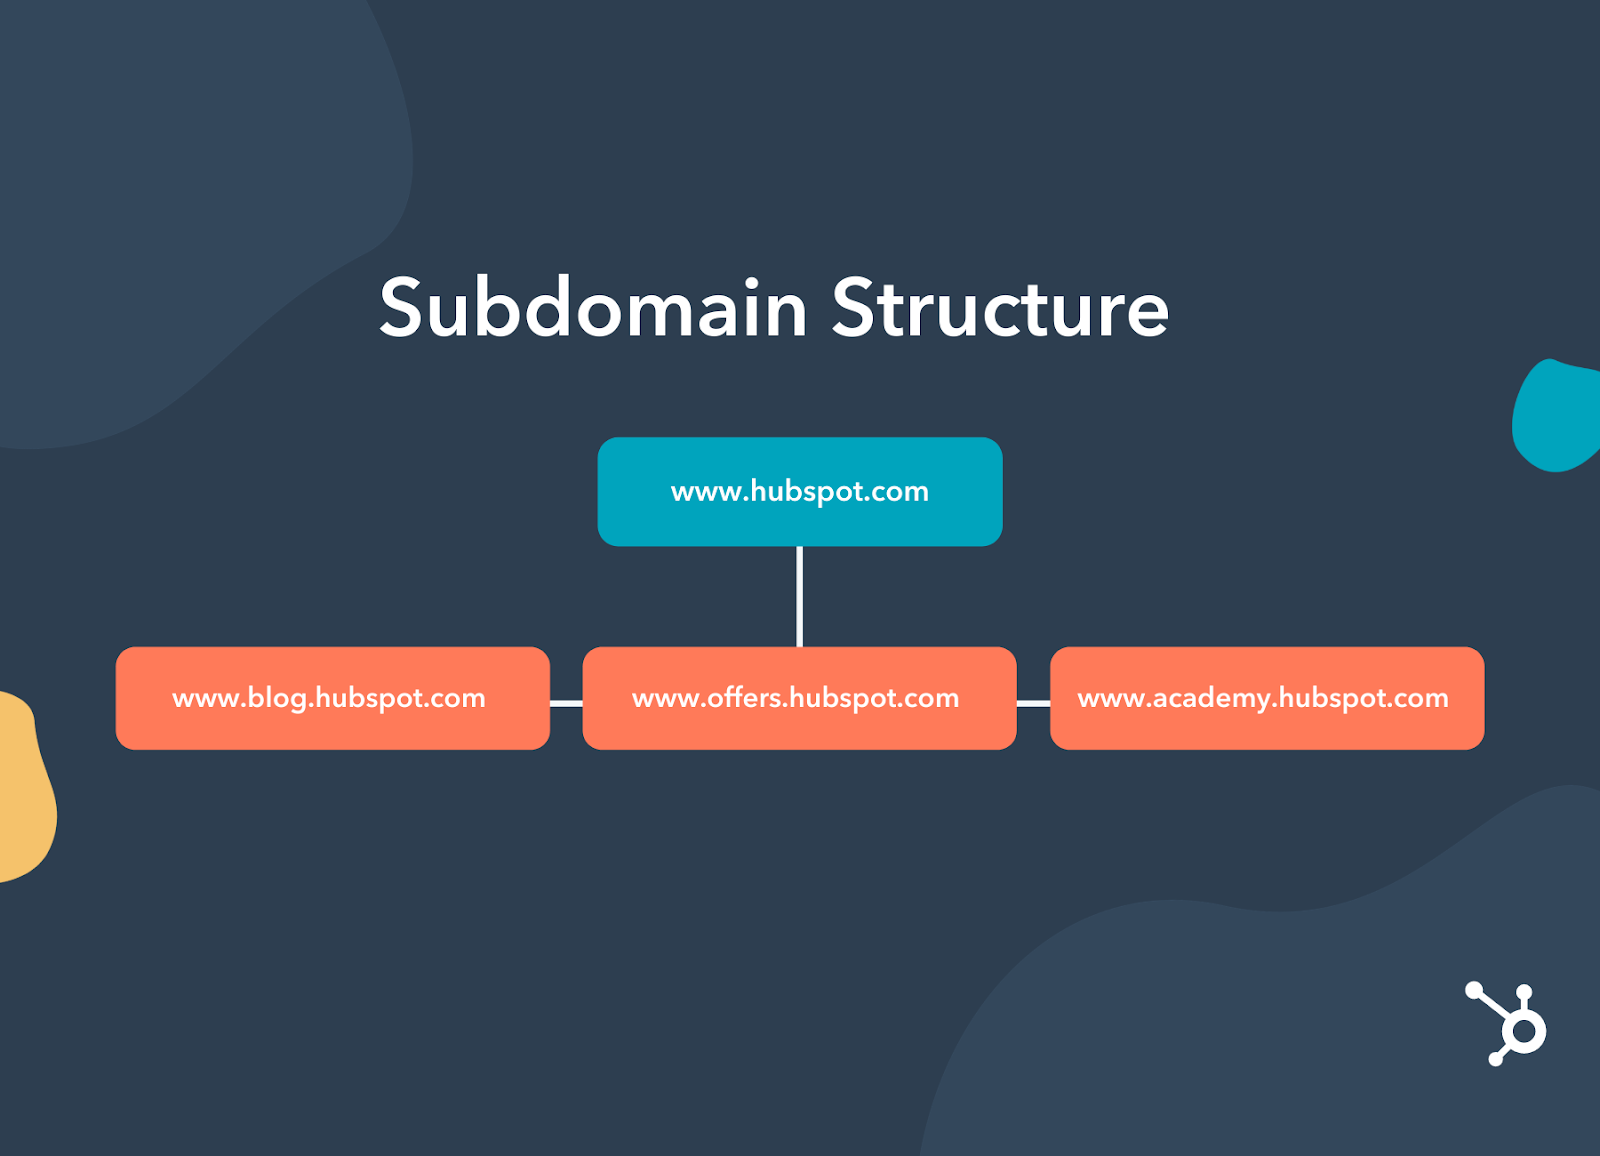 Example of HubSpot's Subdomain structure